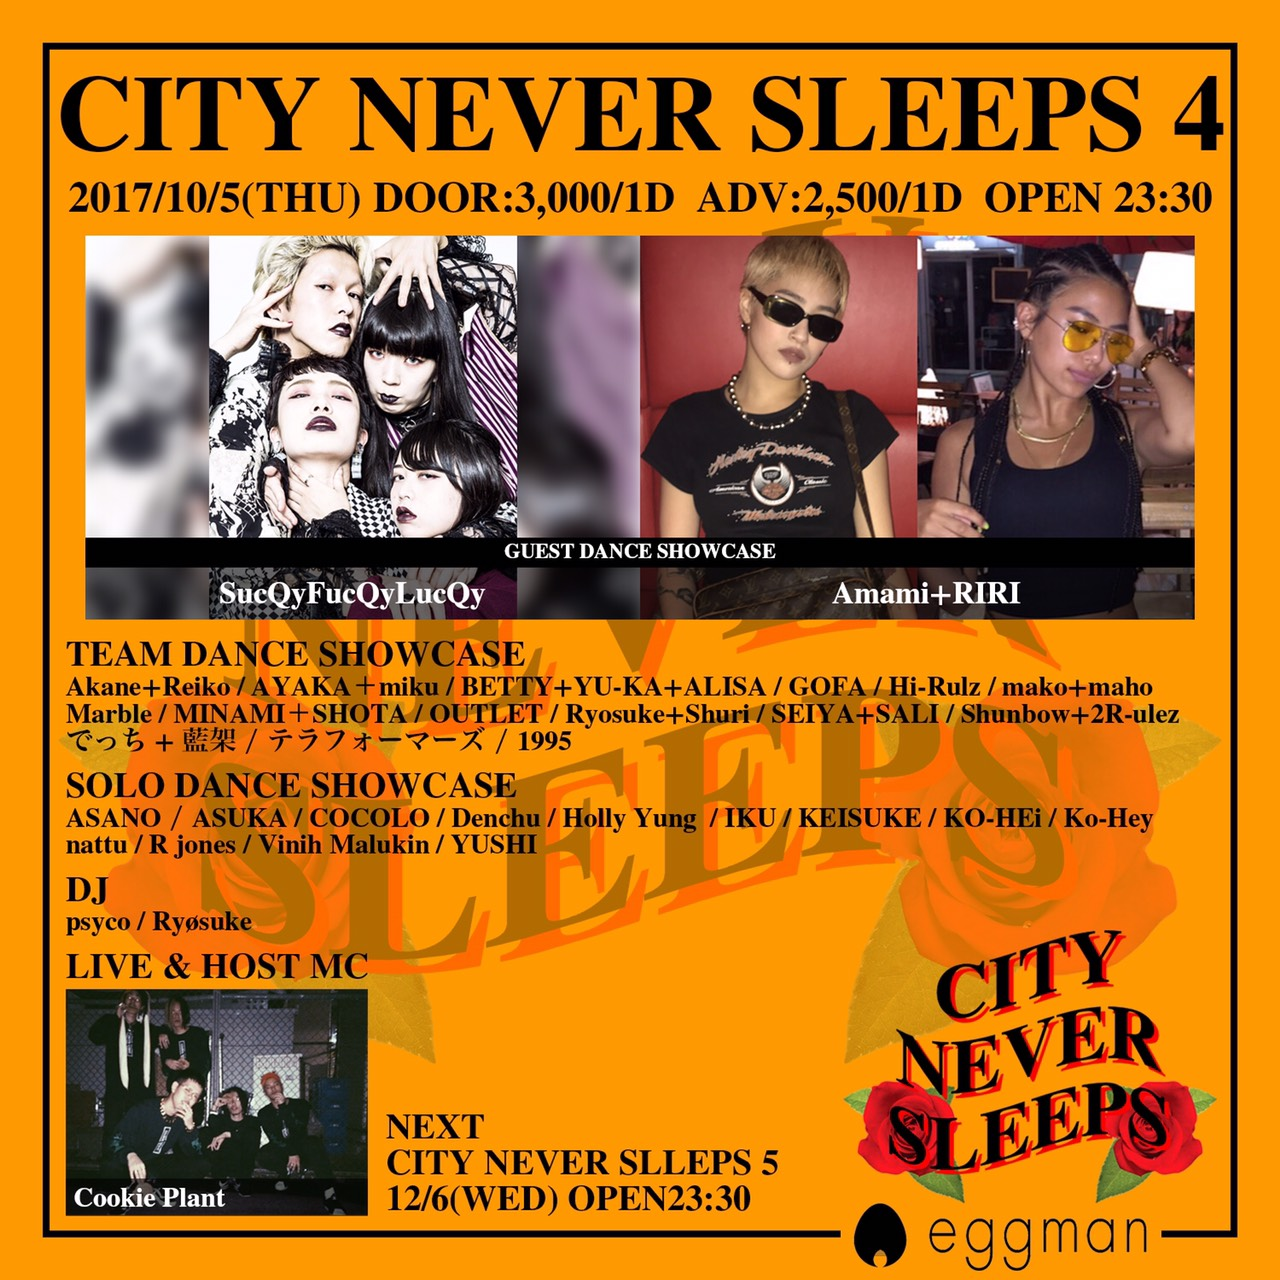 CITY NEVER SLEEPS 4